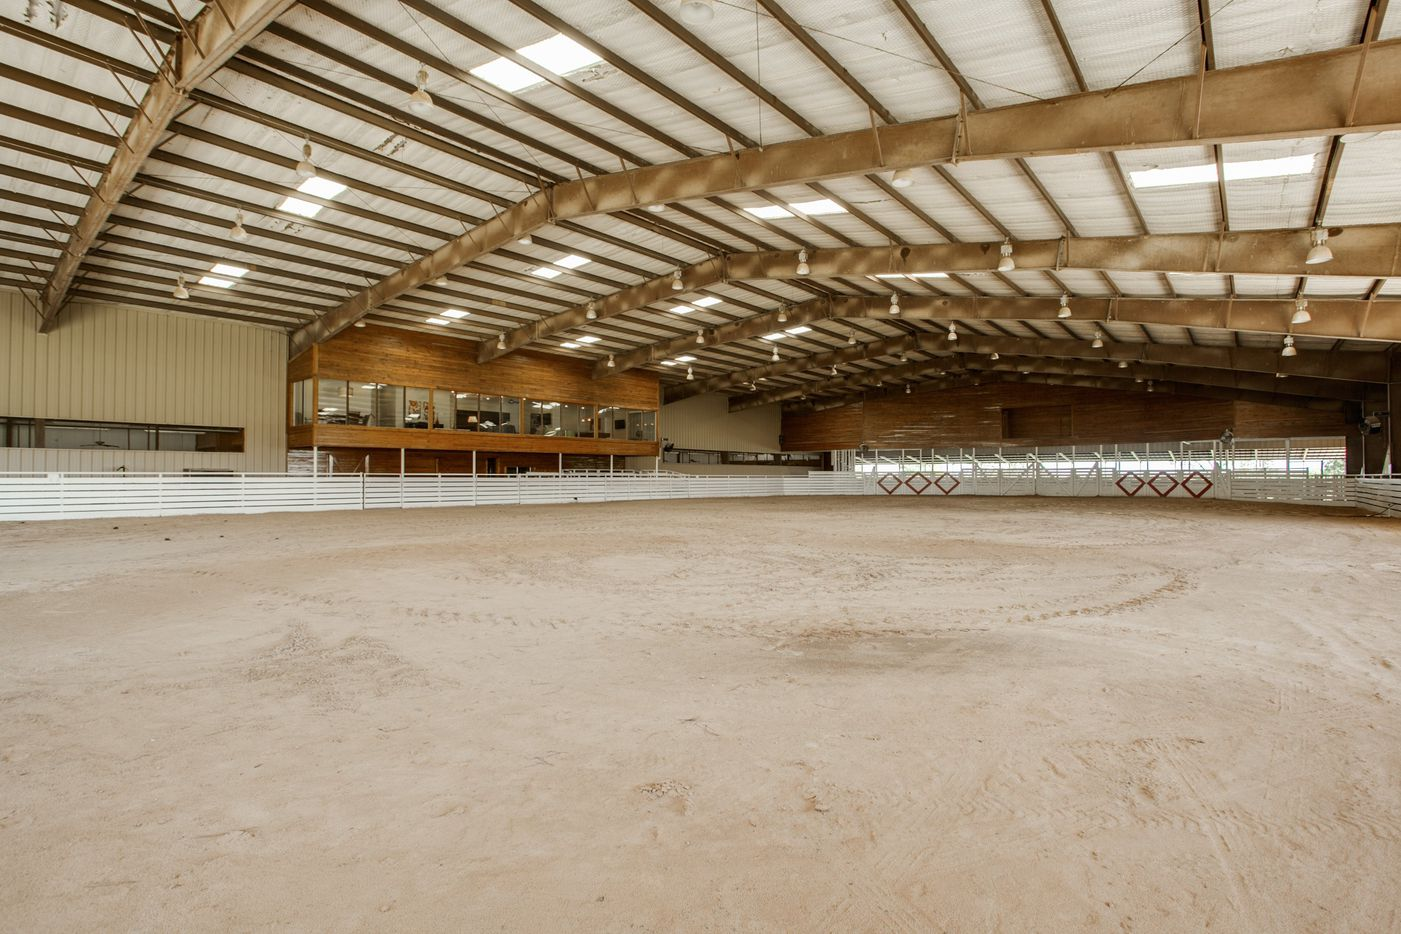 The property boasts a 32,000-square foot show barn and indoor arena, with a glass-enclosed luxury viewing suite.